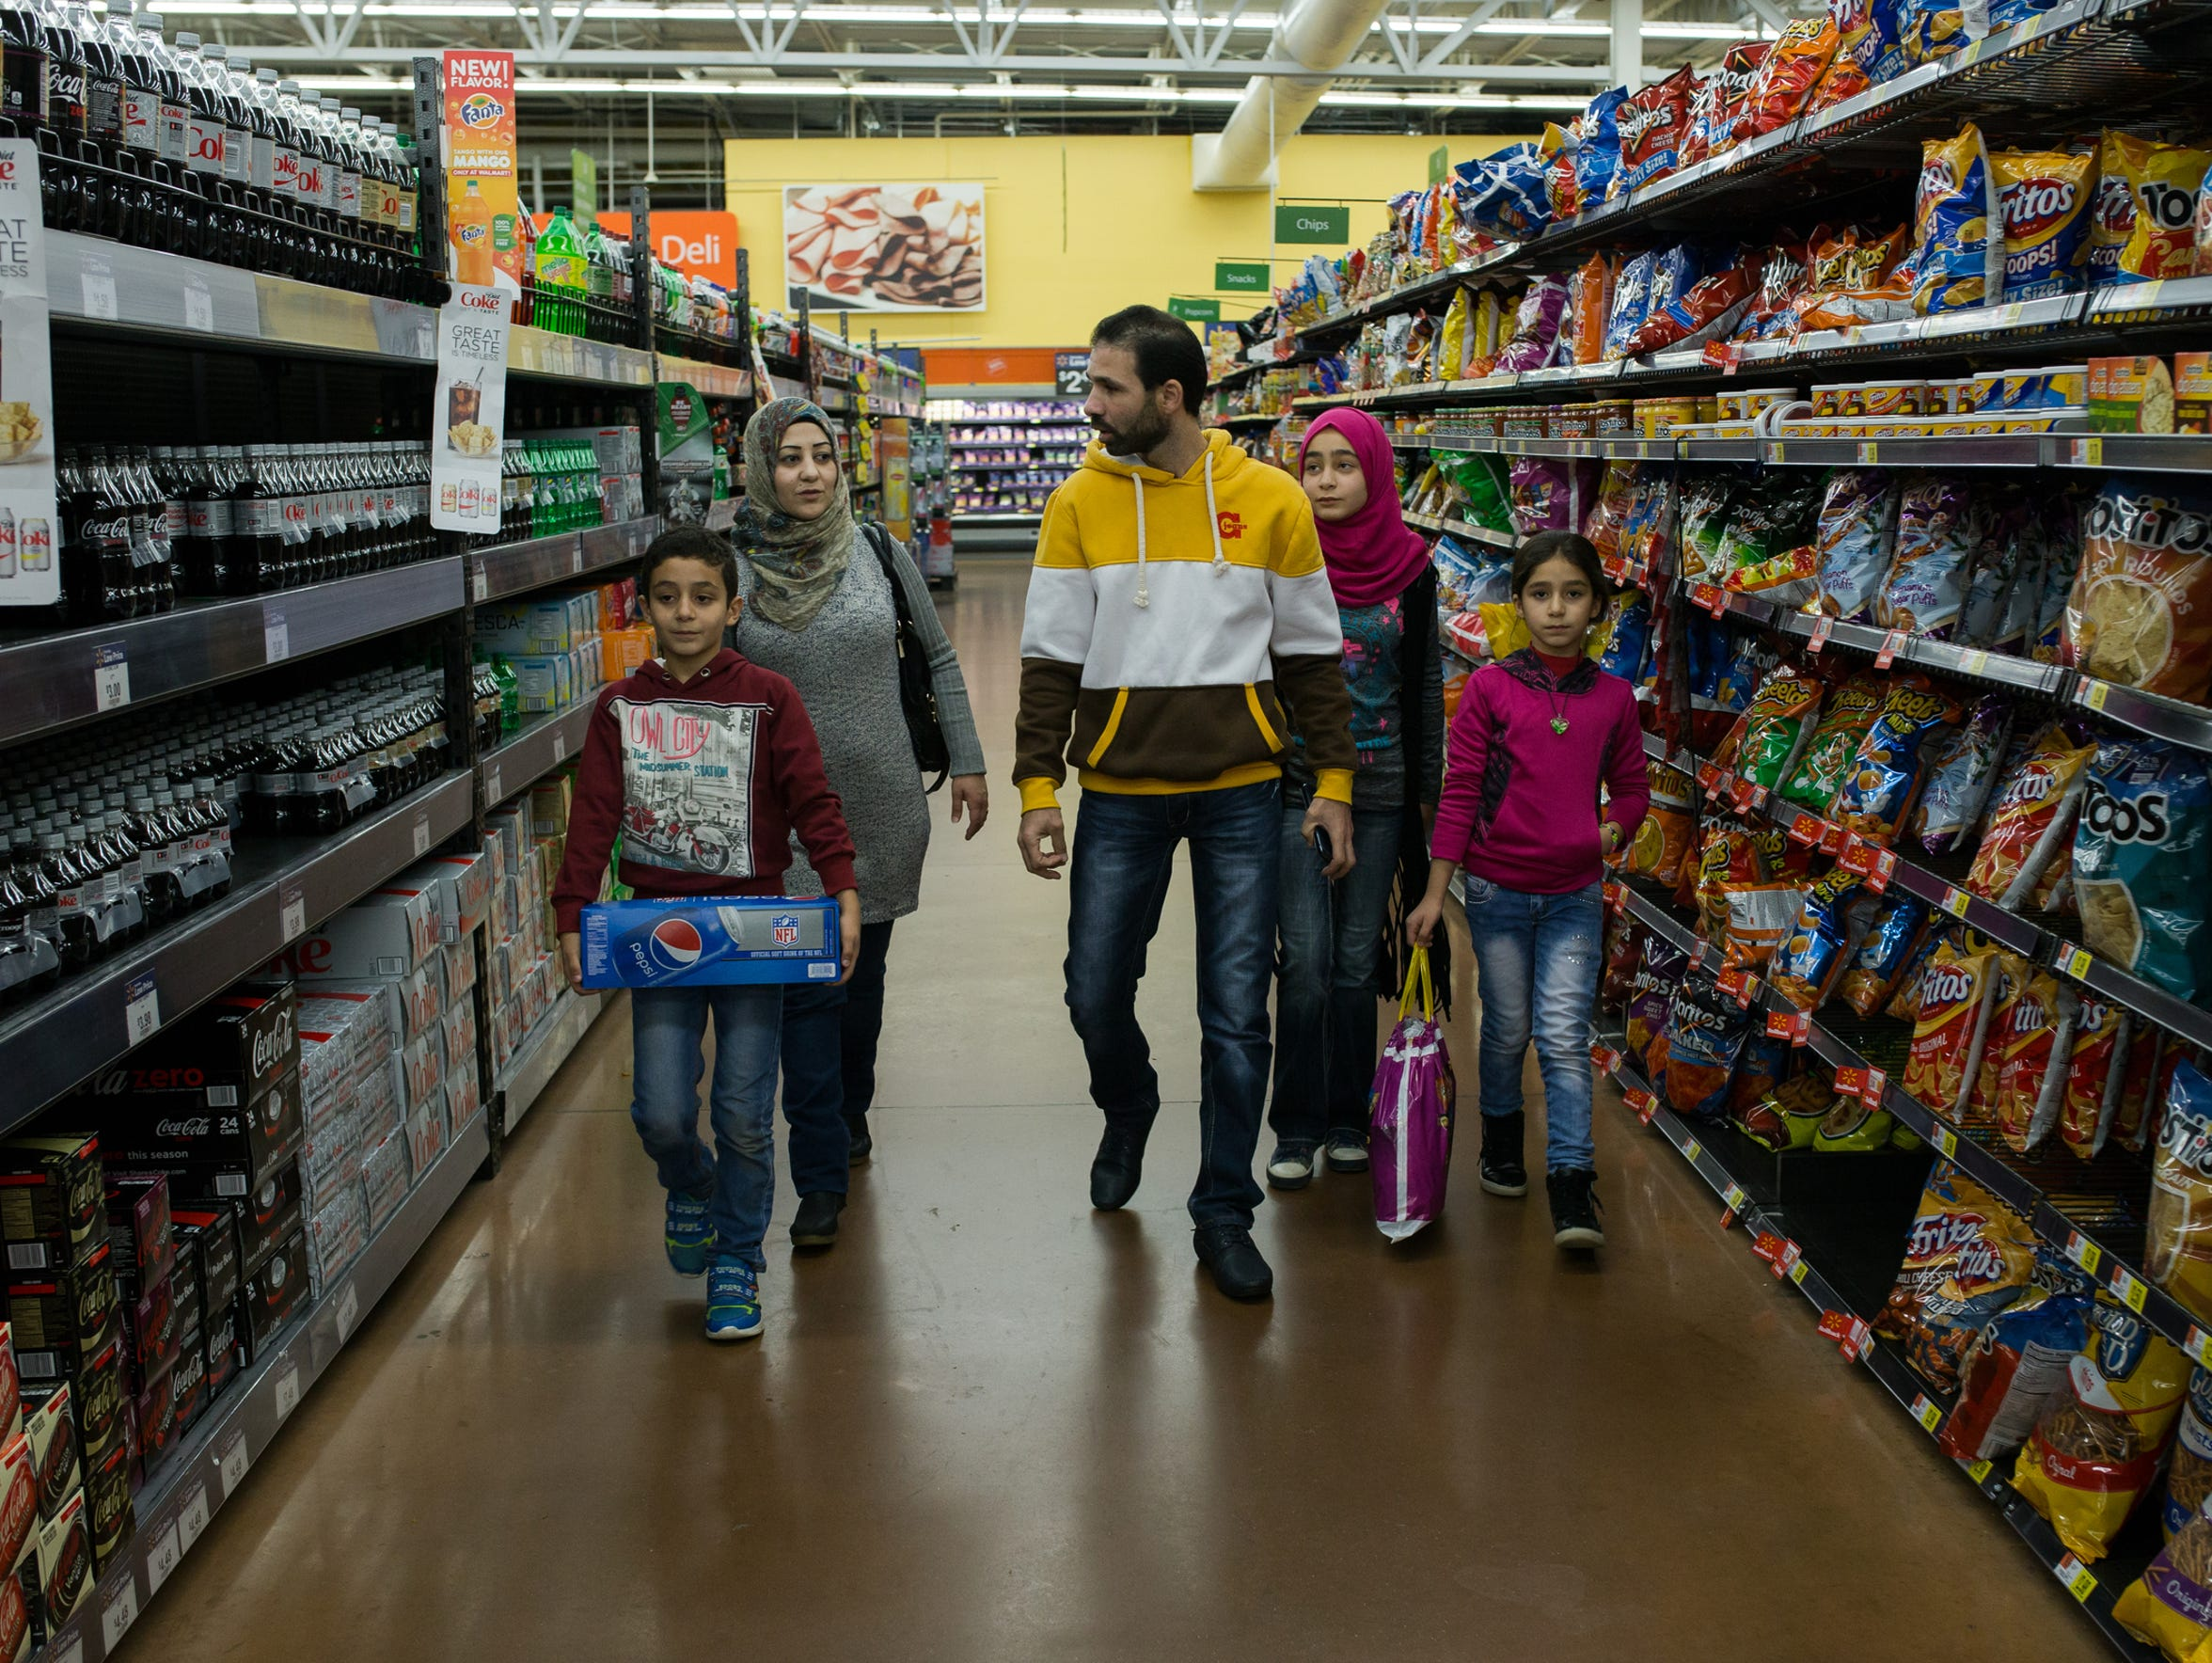 The Sharaf family, Syrian refugees, shops at Walmart